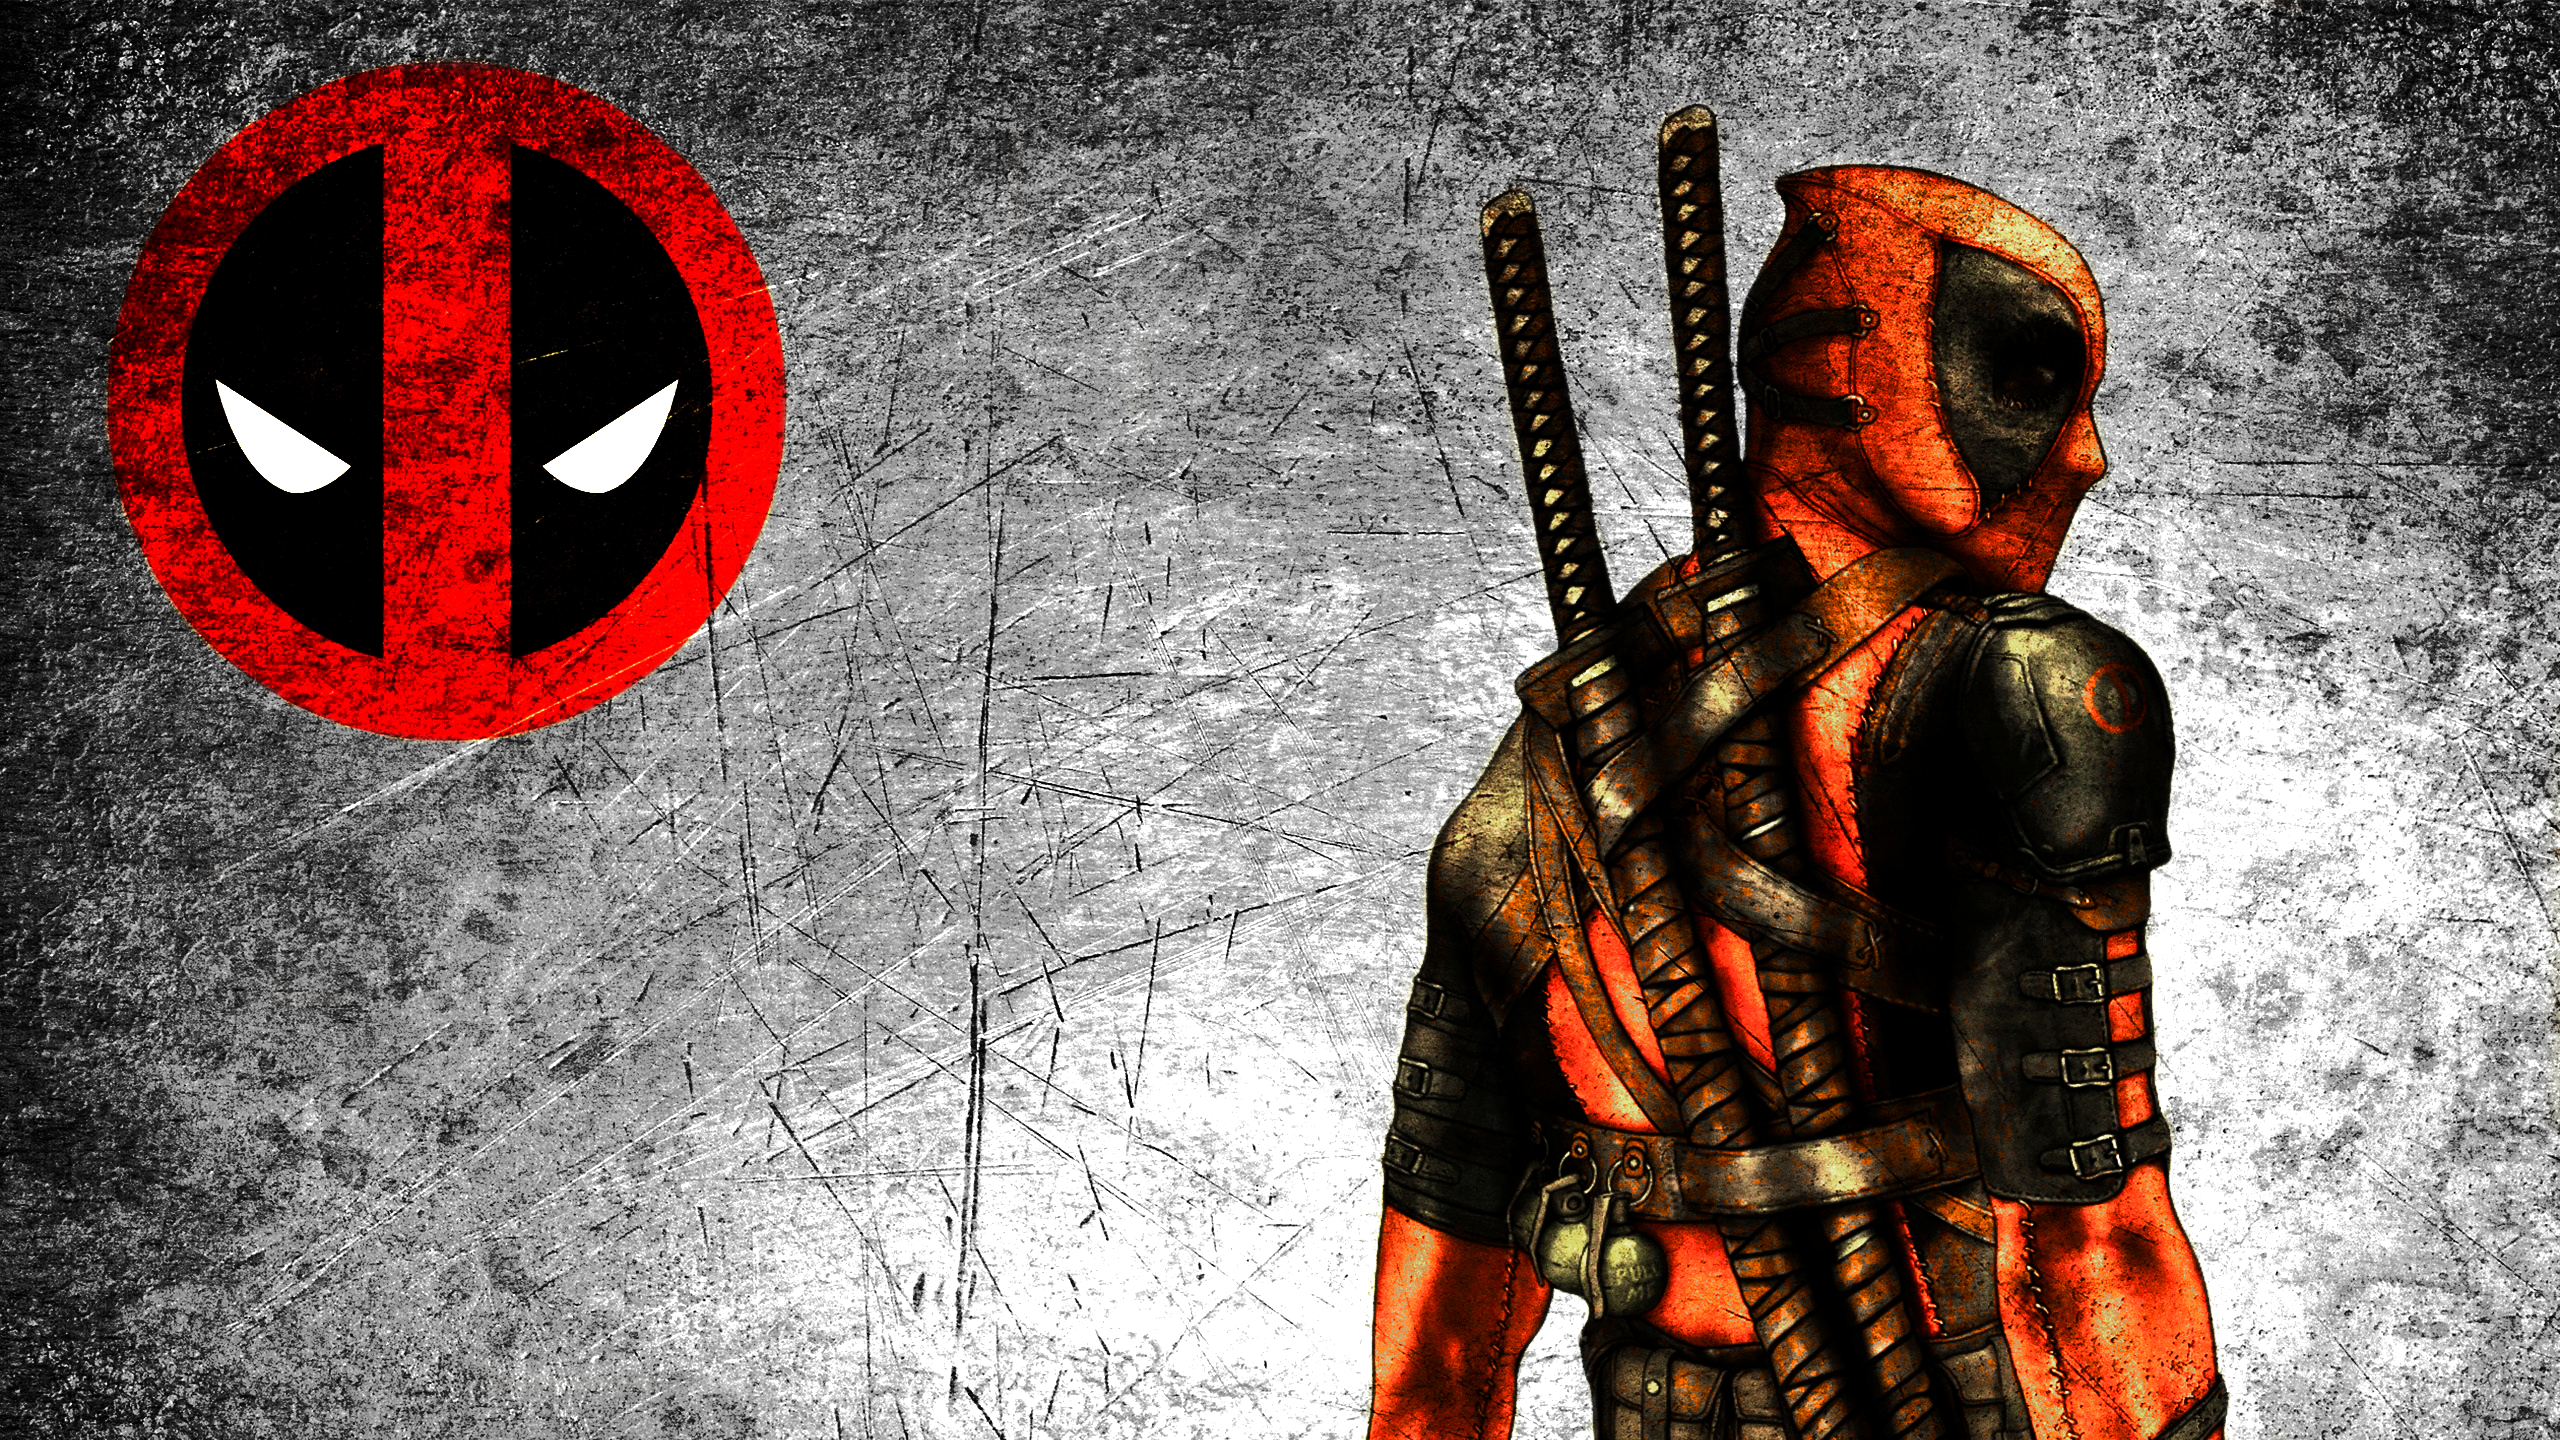 Deadpool Wallpaper Hd - WallpaperSafari